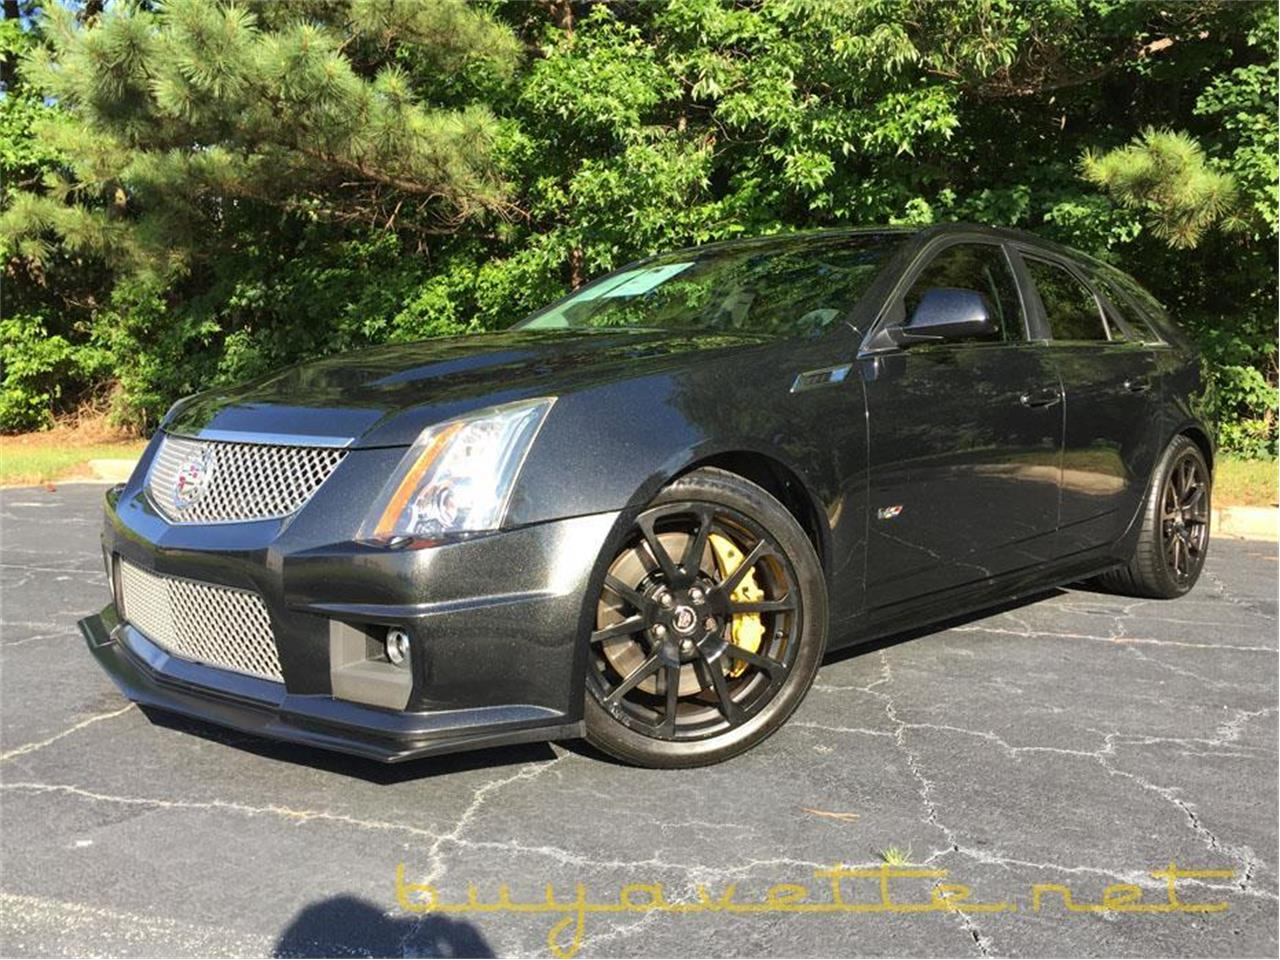 Cadillac Cts V Wagon For Sale >> For Sale 2012 Cadillac Cts V Wagon In Atlanta Georgia